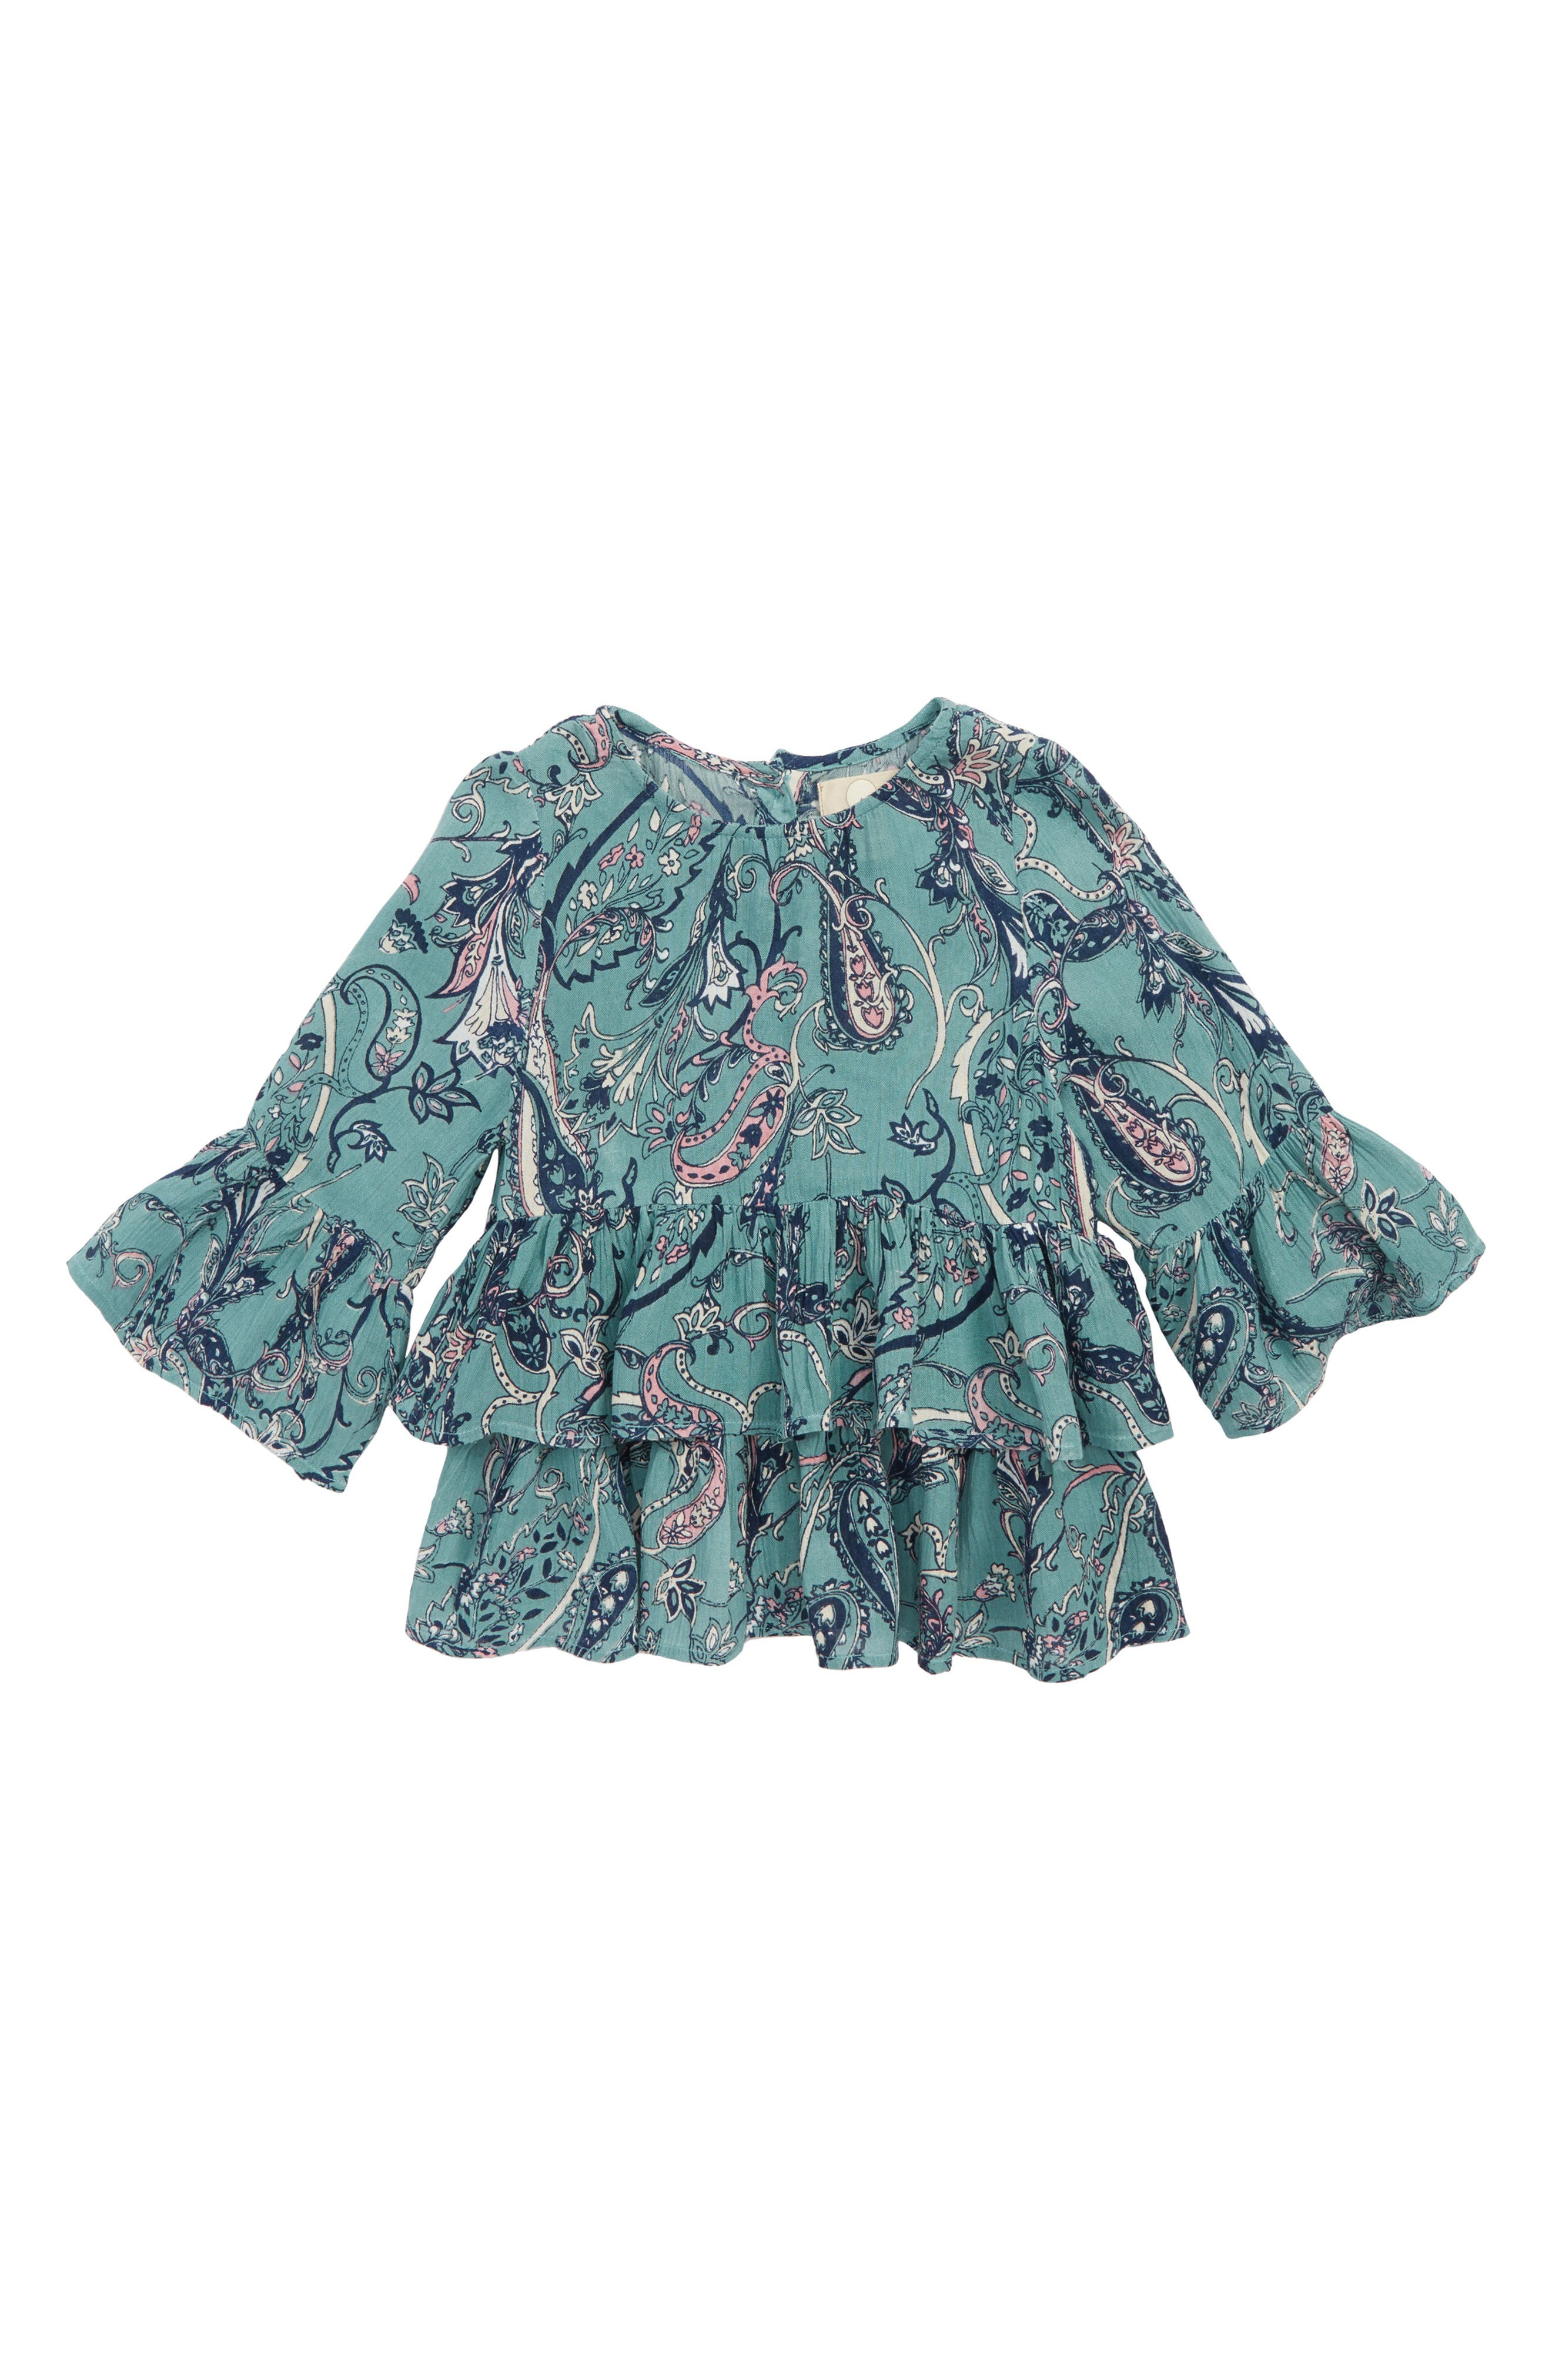 Monica Top,                         Main,                         color, TEAL